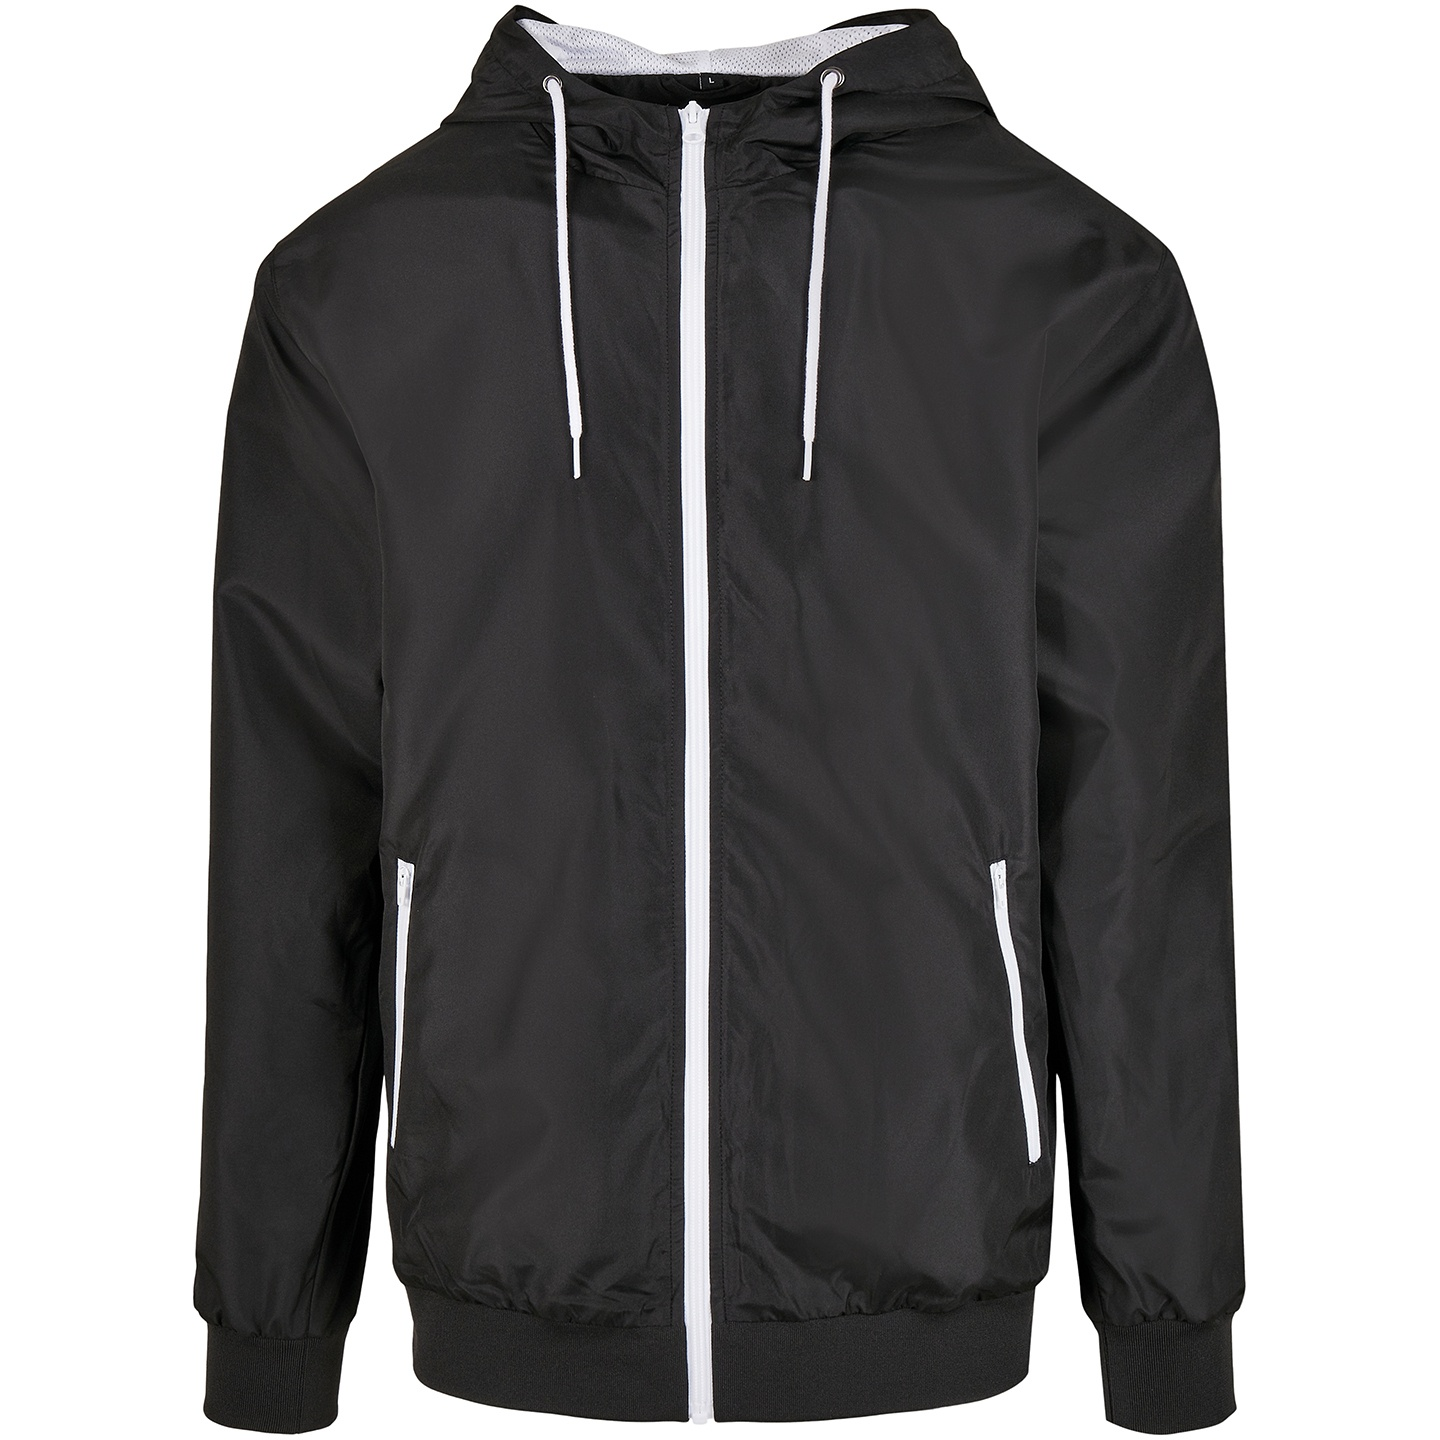 Build Your Brand Mens Windrunner Recycled Jacket (4XL) (Black/White)